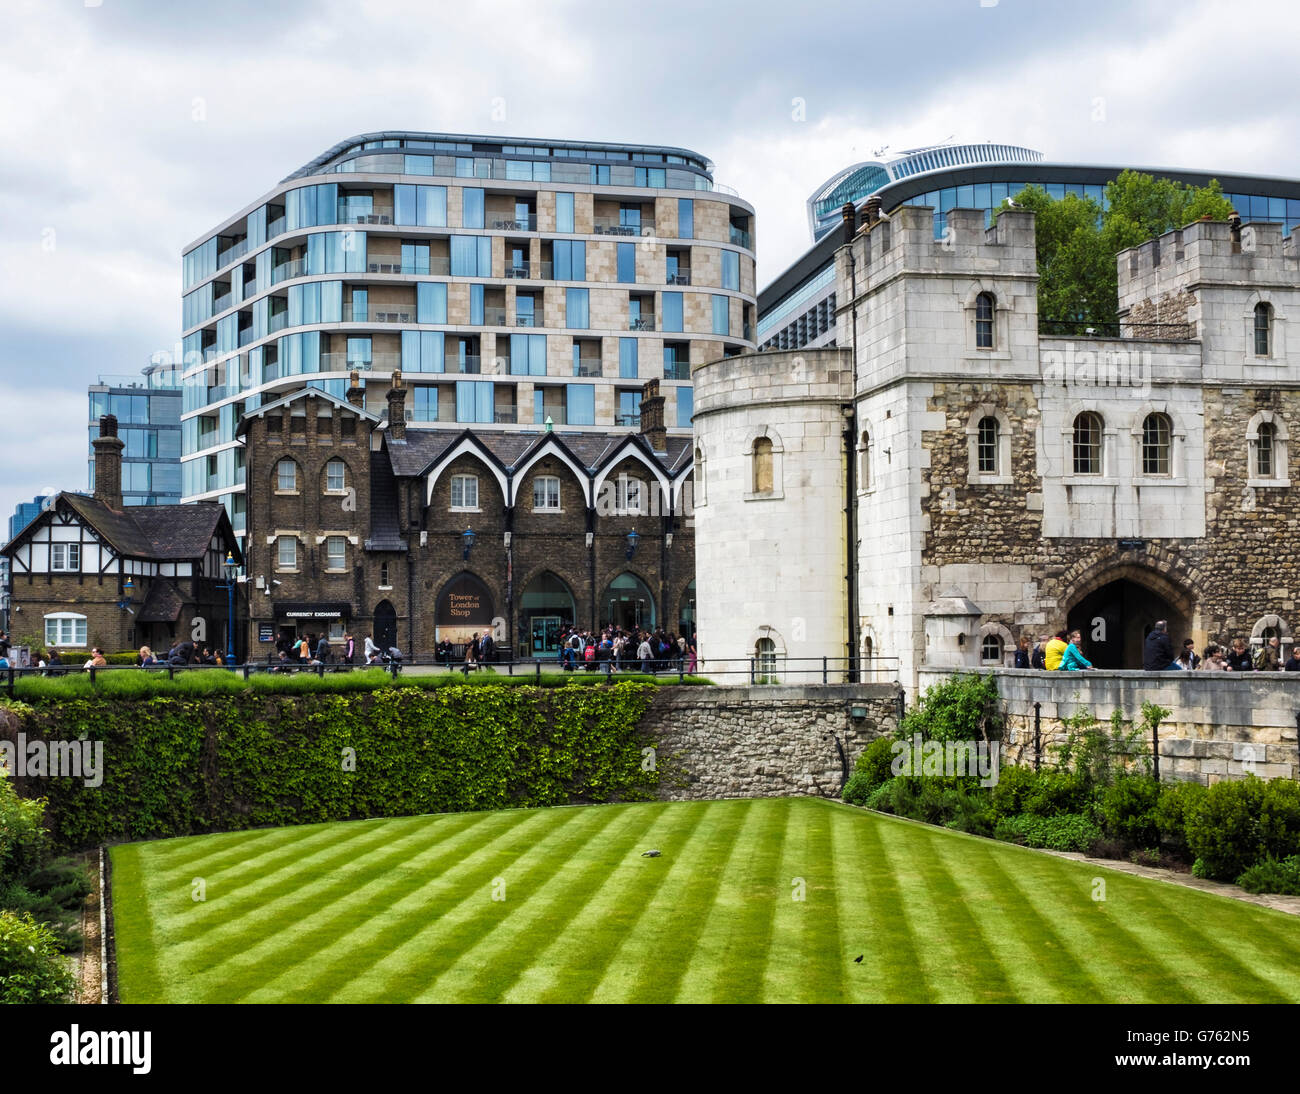 London Buildings, old and new, Historic Tower of London building and new apartment blocks - Stock Image